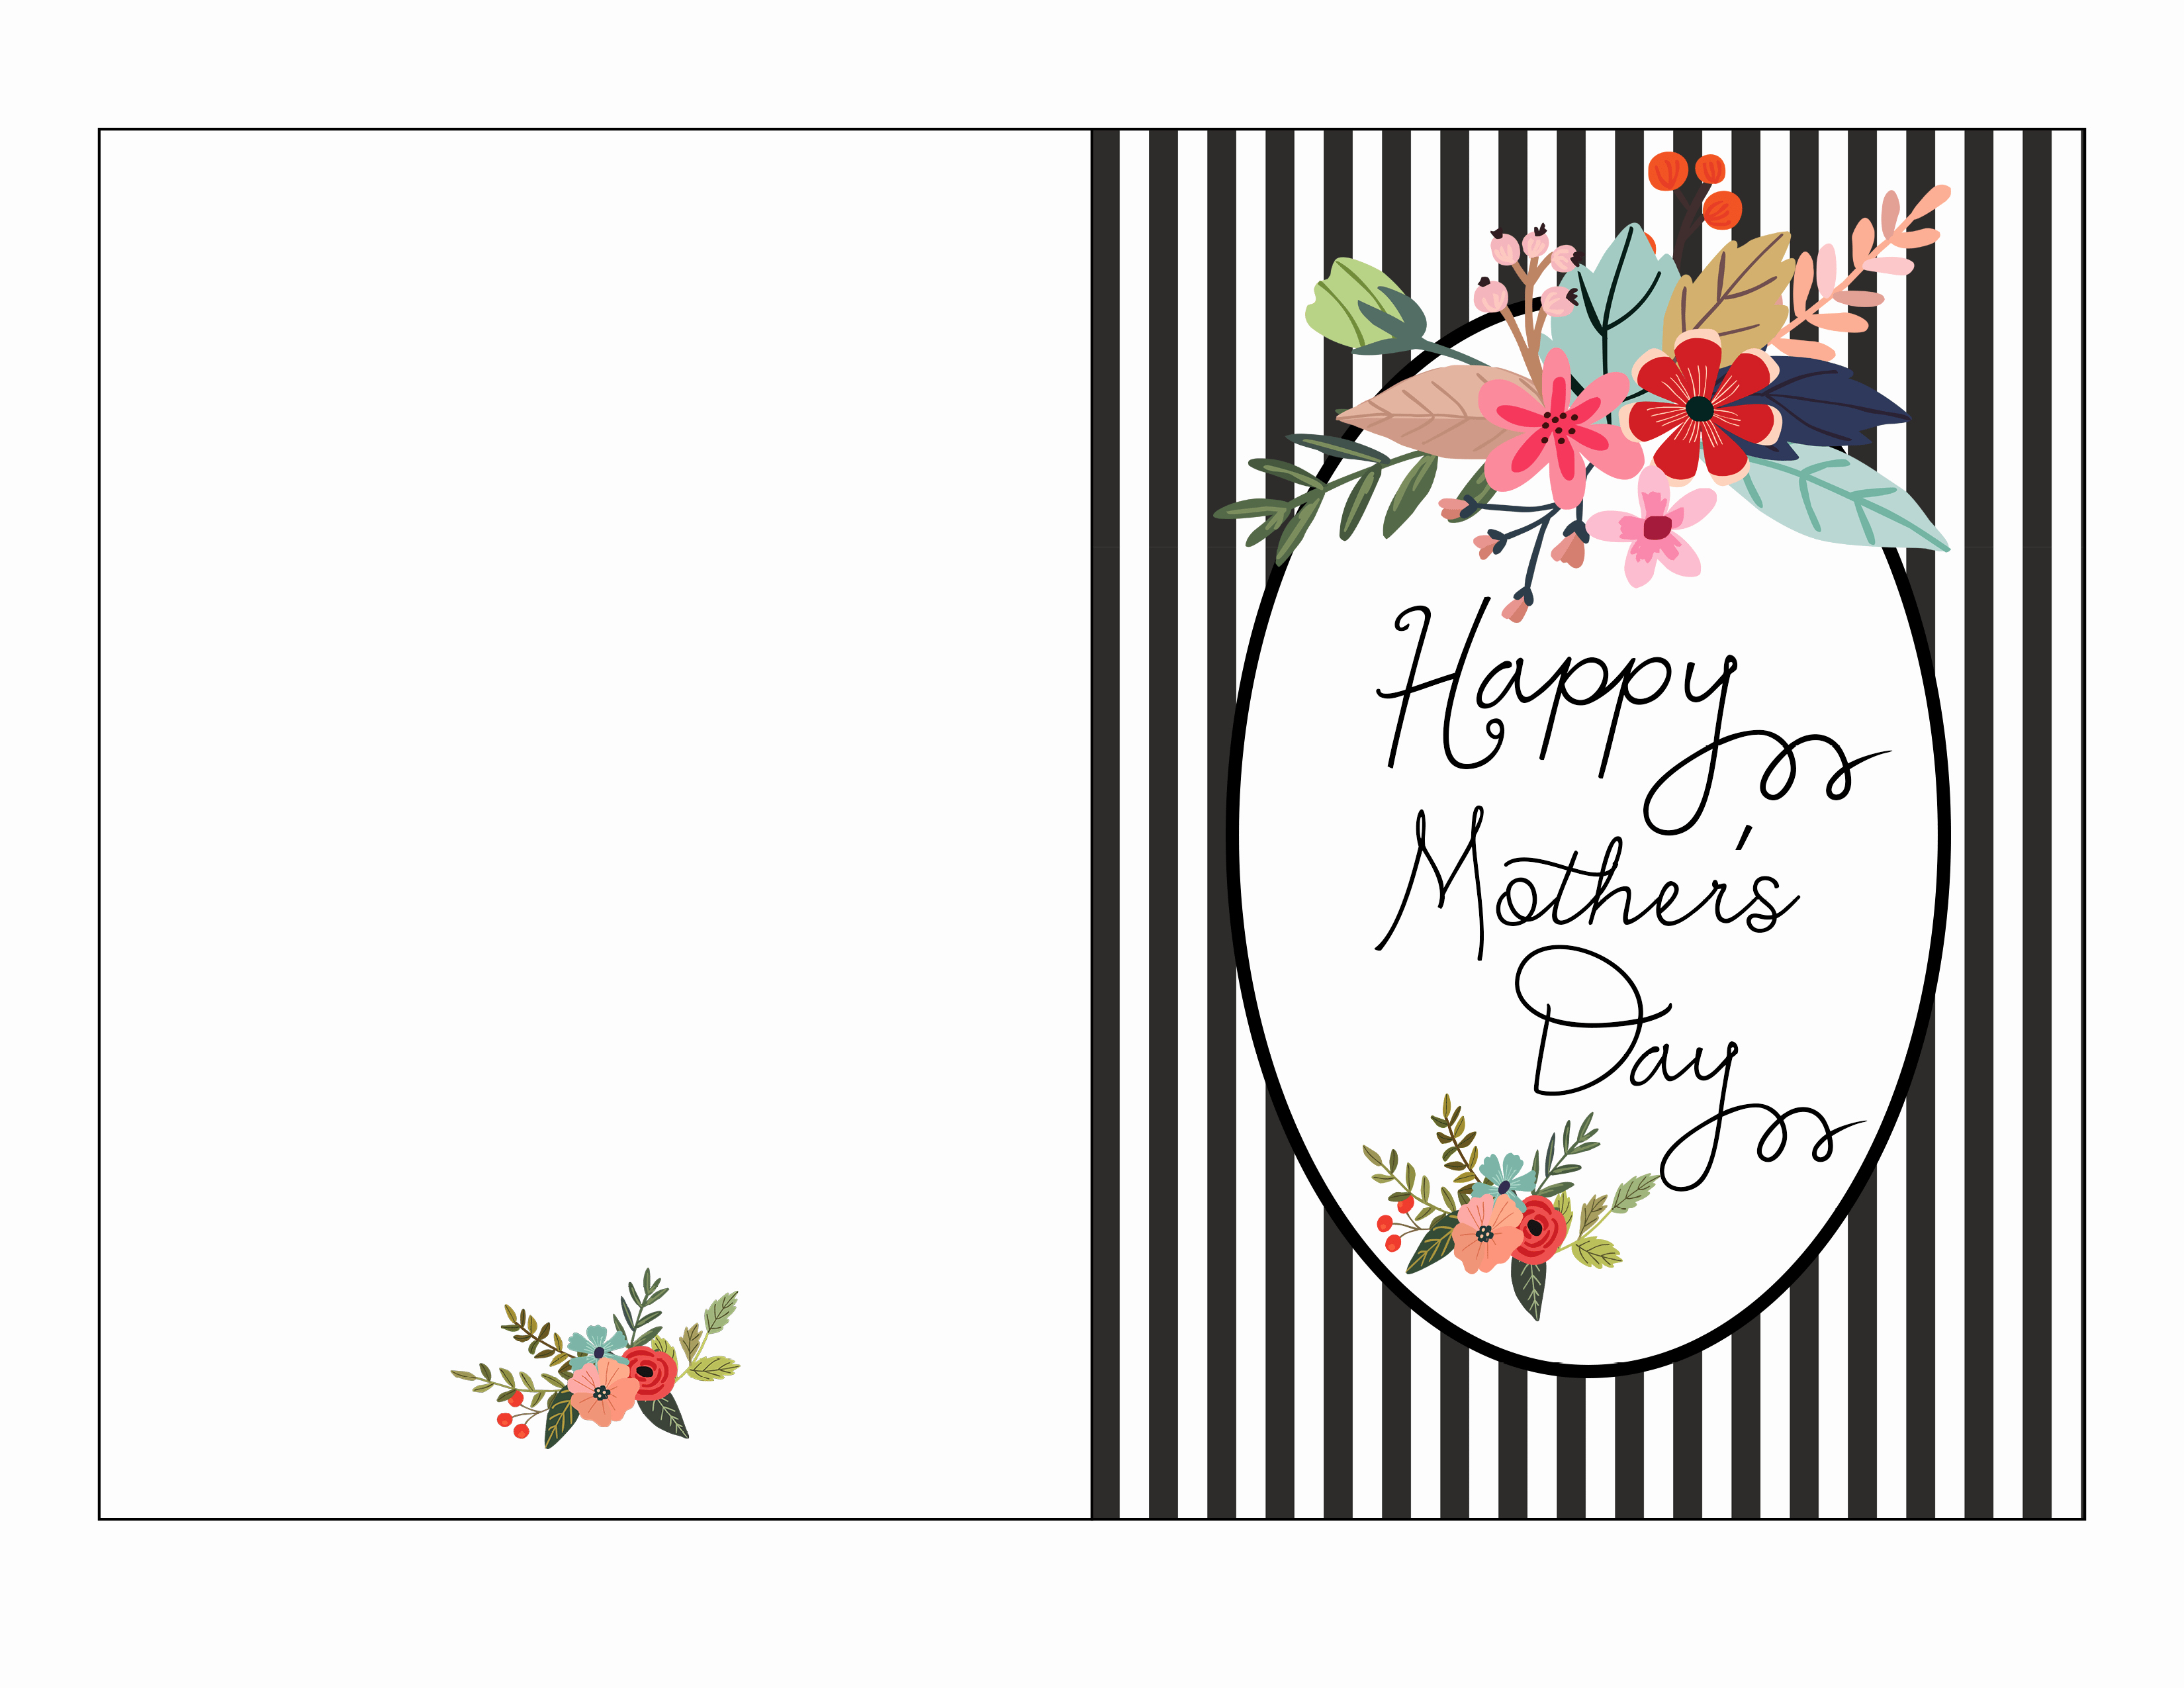 Mothers Day Card Template Luxury Free Mother S Day Card Printable Fab Fatale